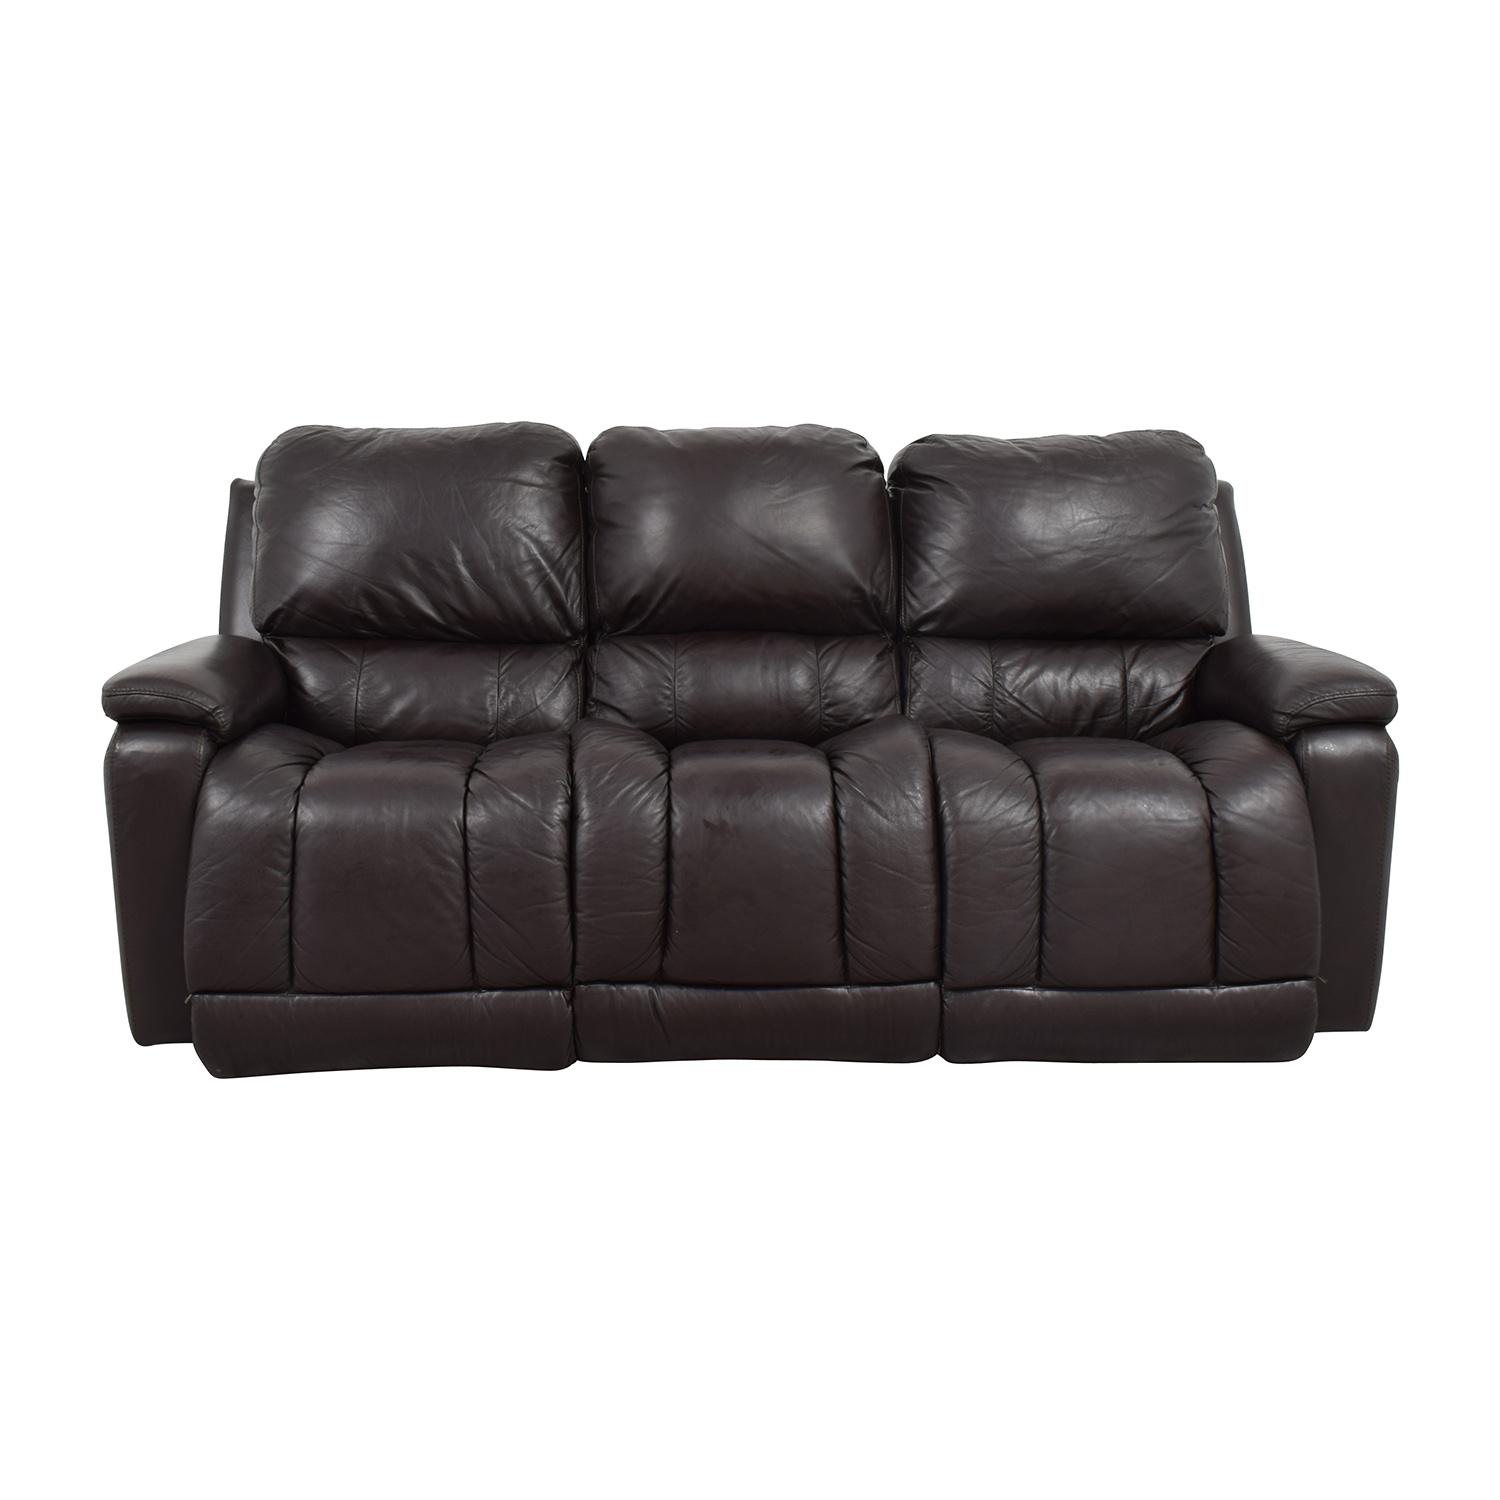 shop La-Z-Boy La-Z-Boy Brown Leather Reclining Sofa online